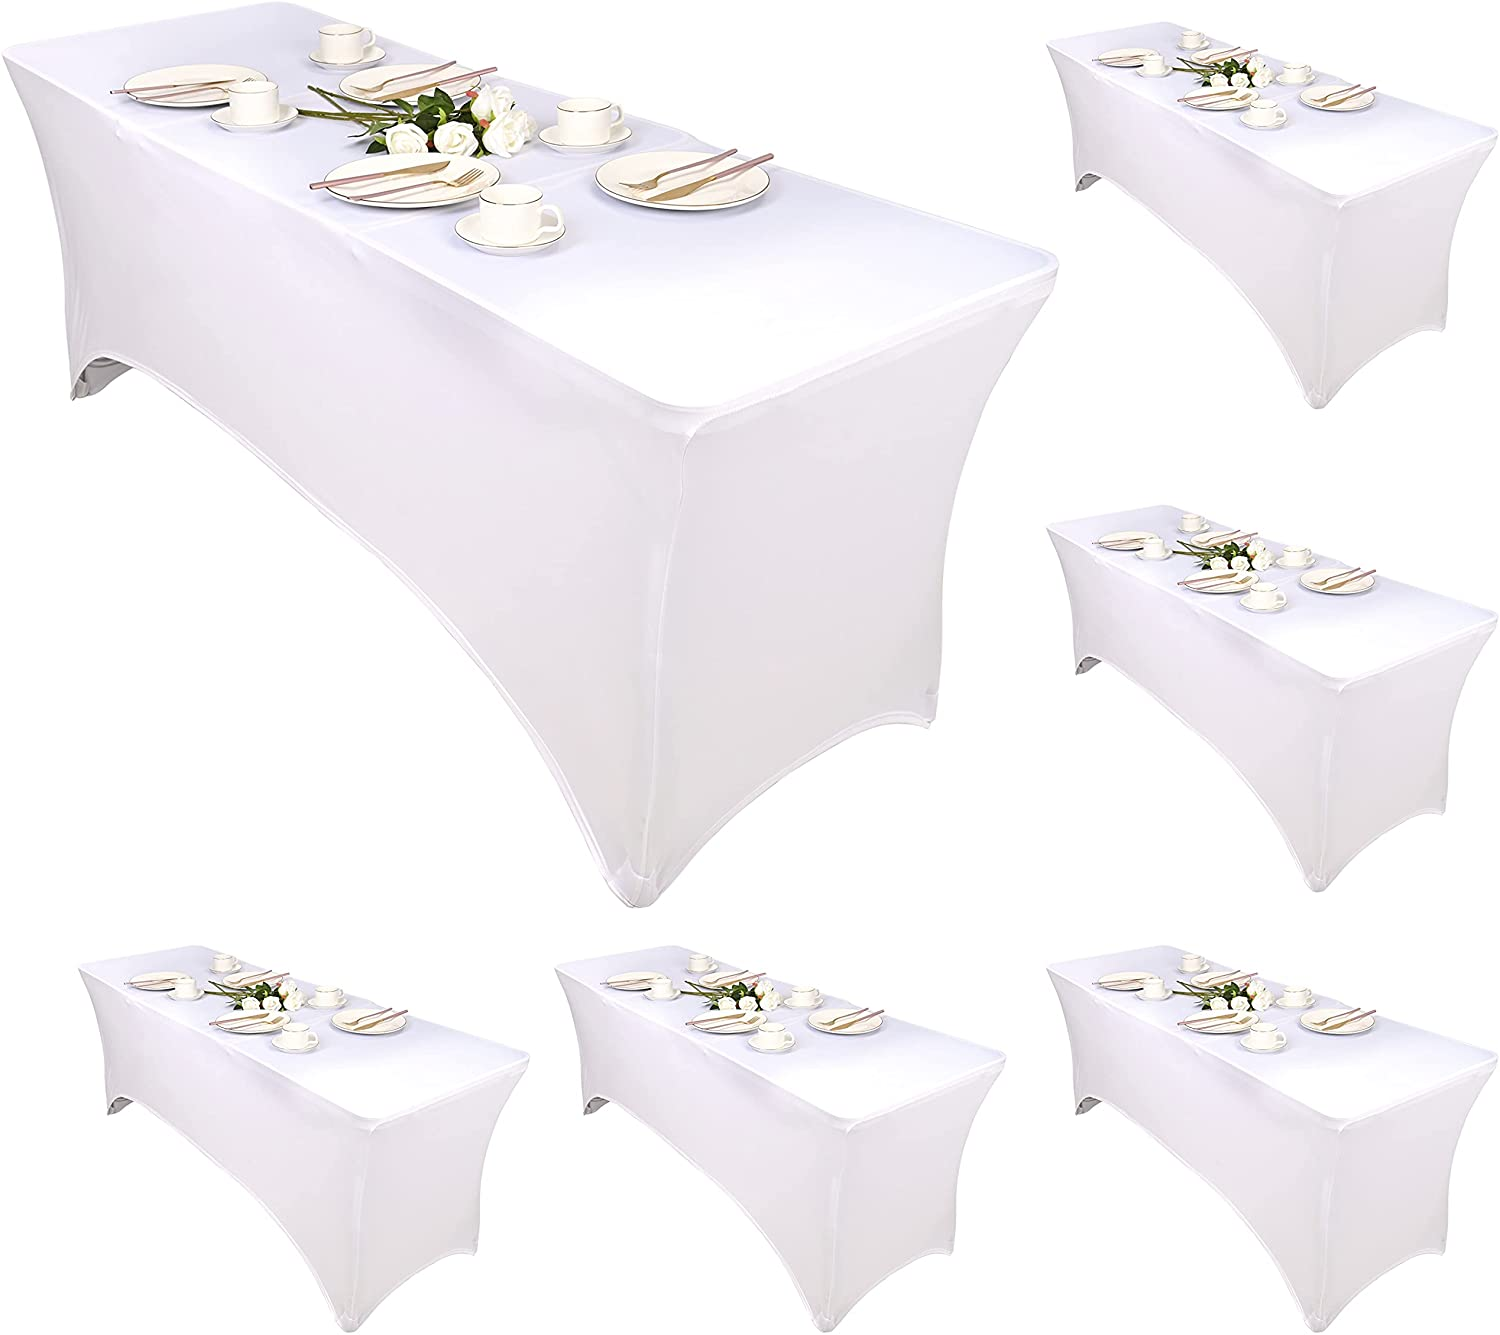 6 Pcs Ft OFFicial store Stretch Spandex Rectangular Stretchable Tablecloth Pa Super sale period limited